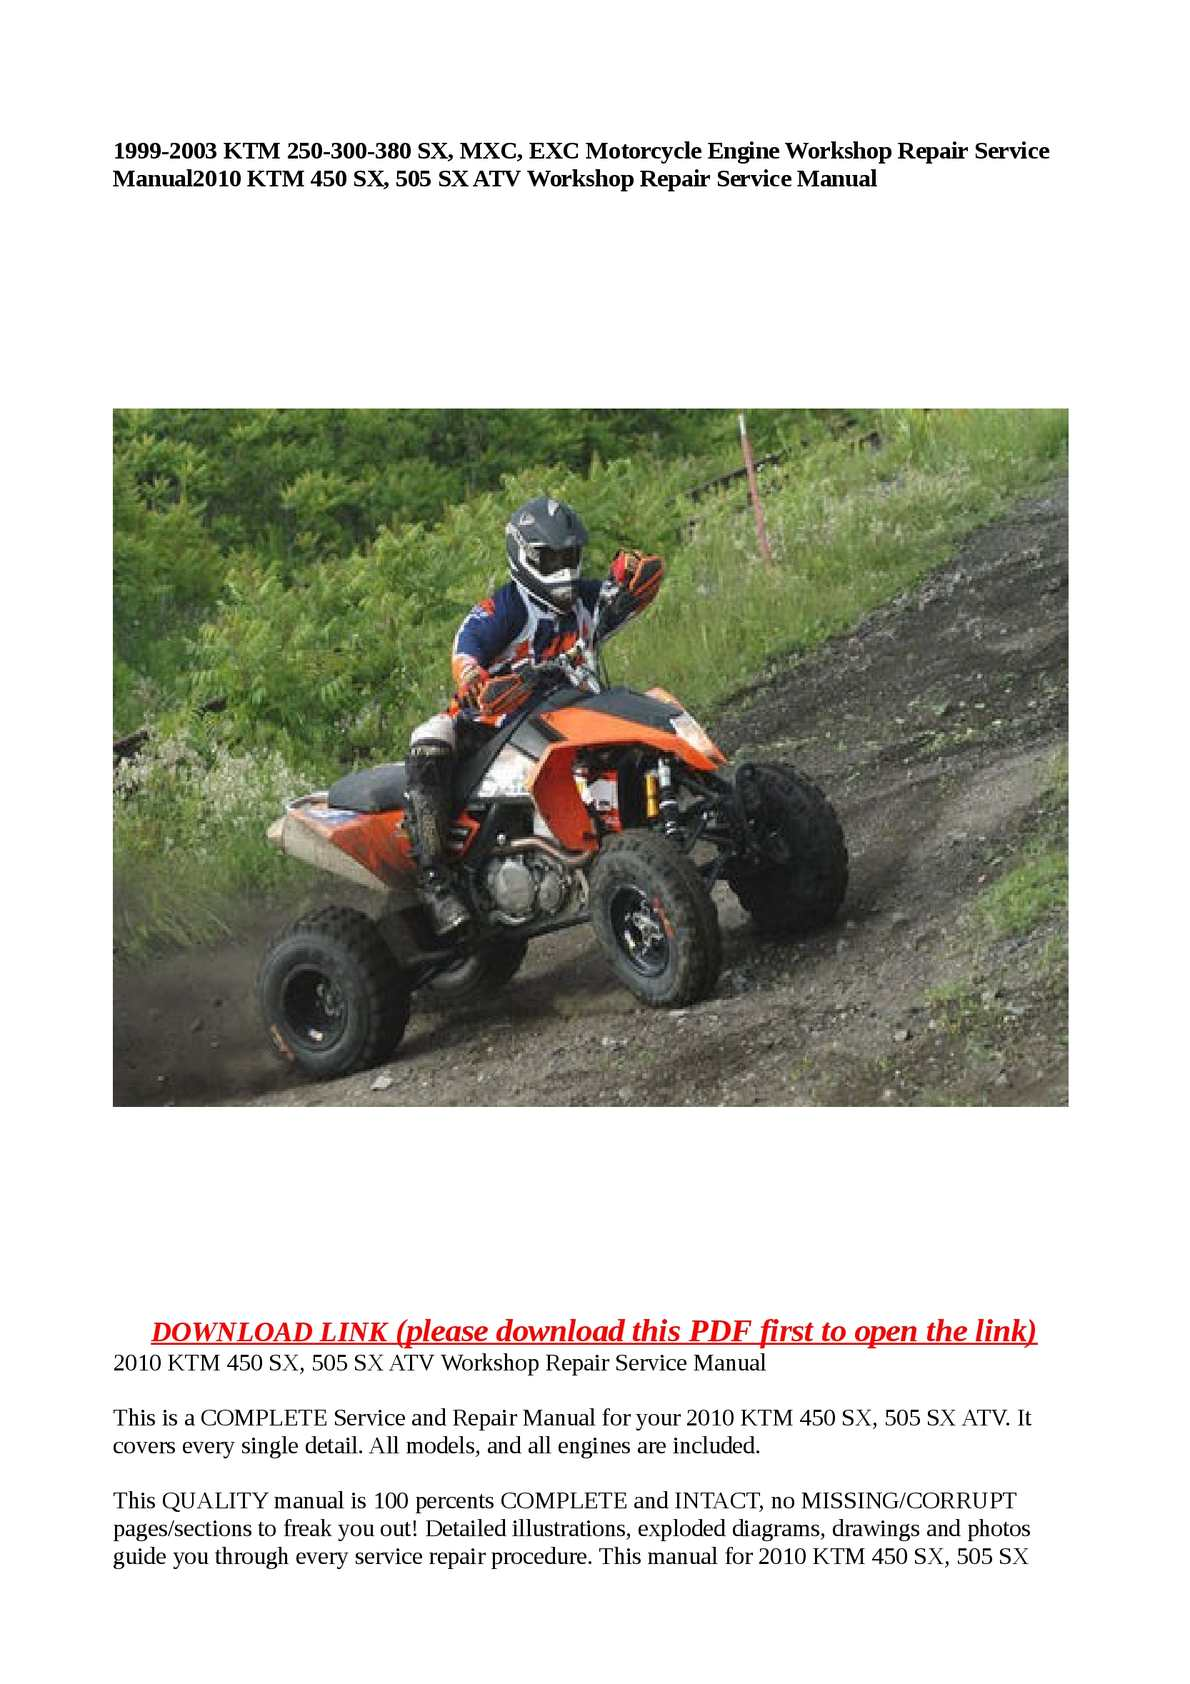 ktm 450 atv wiring diagram